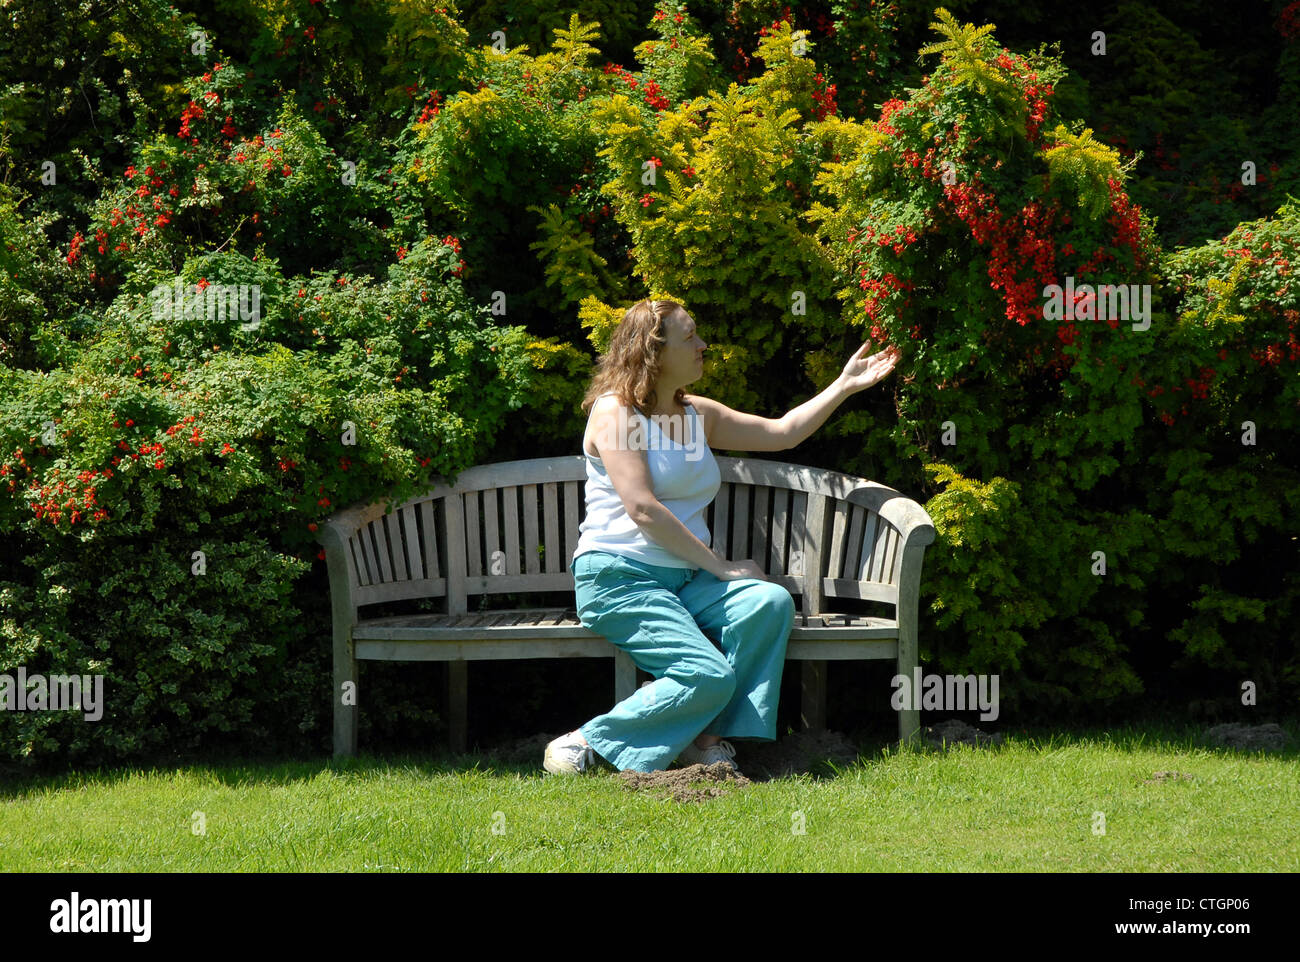 A woman admires plants at Hergest Croft Gardens in Kington, Herefordshire. - Stock Image